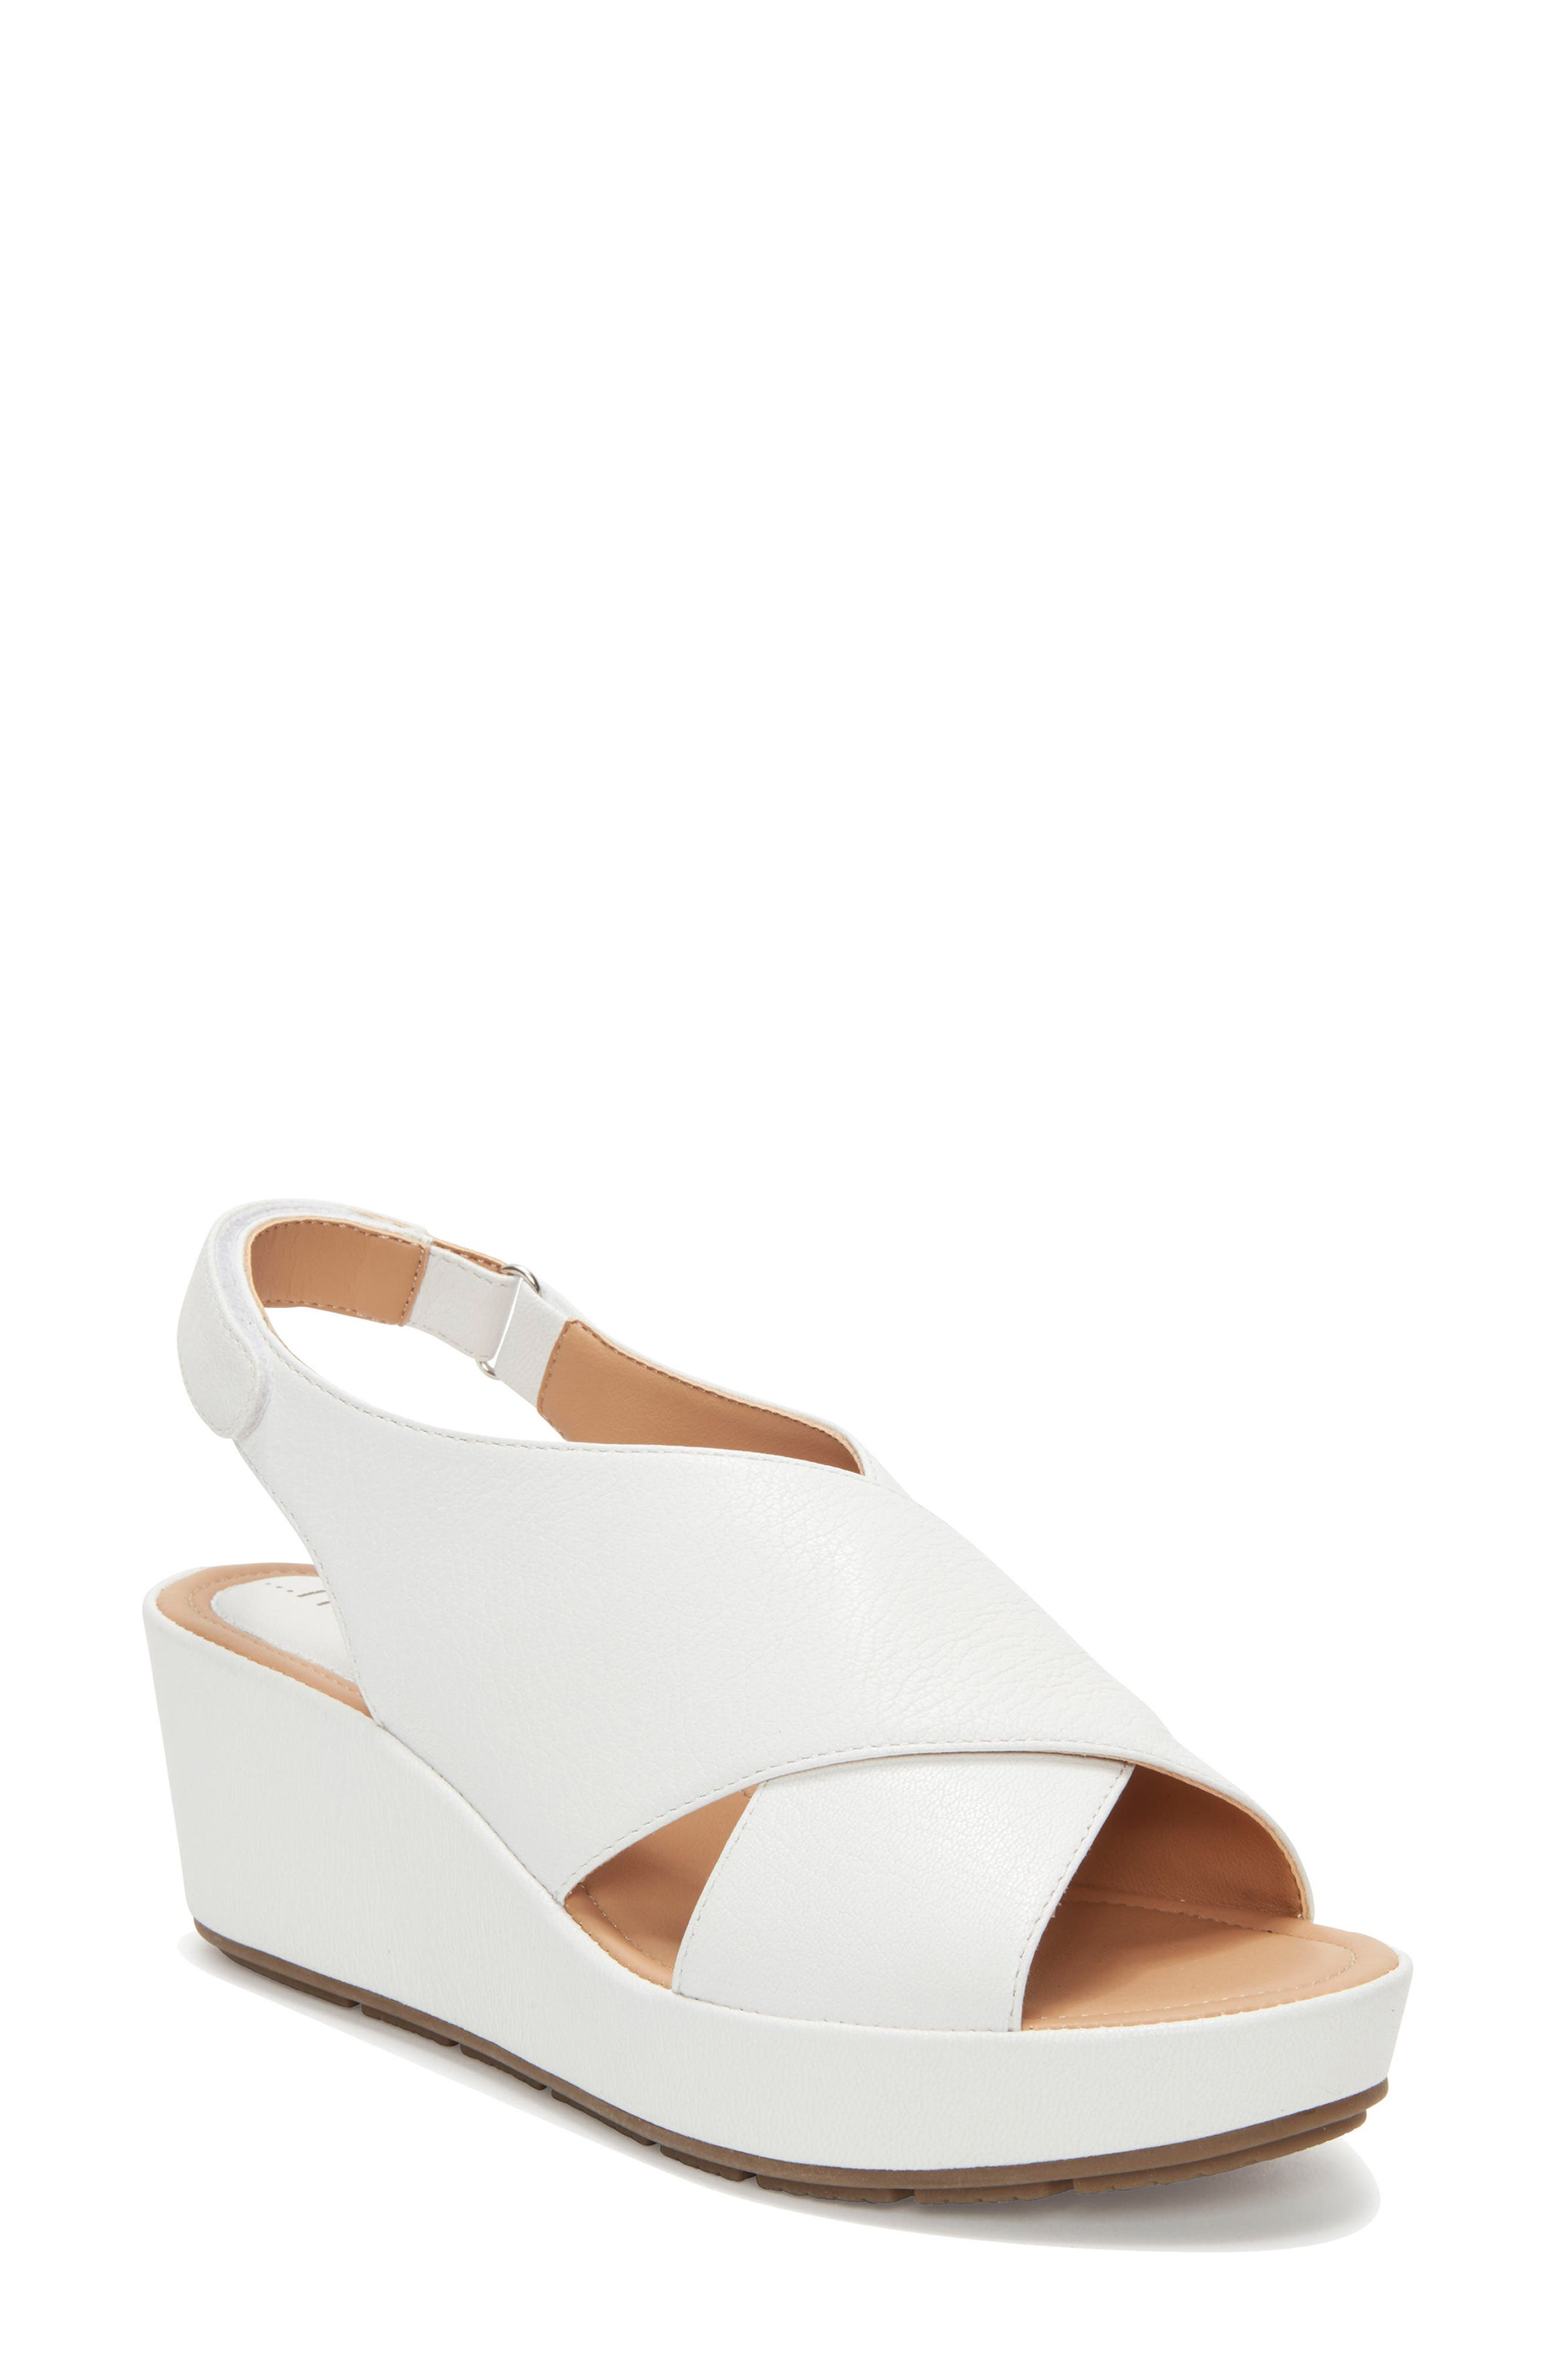 Arena Wedge Sandal,                         Main,                         color, White Leather